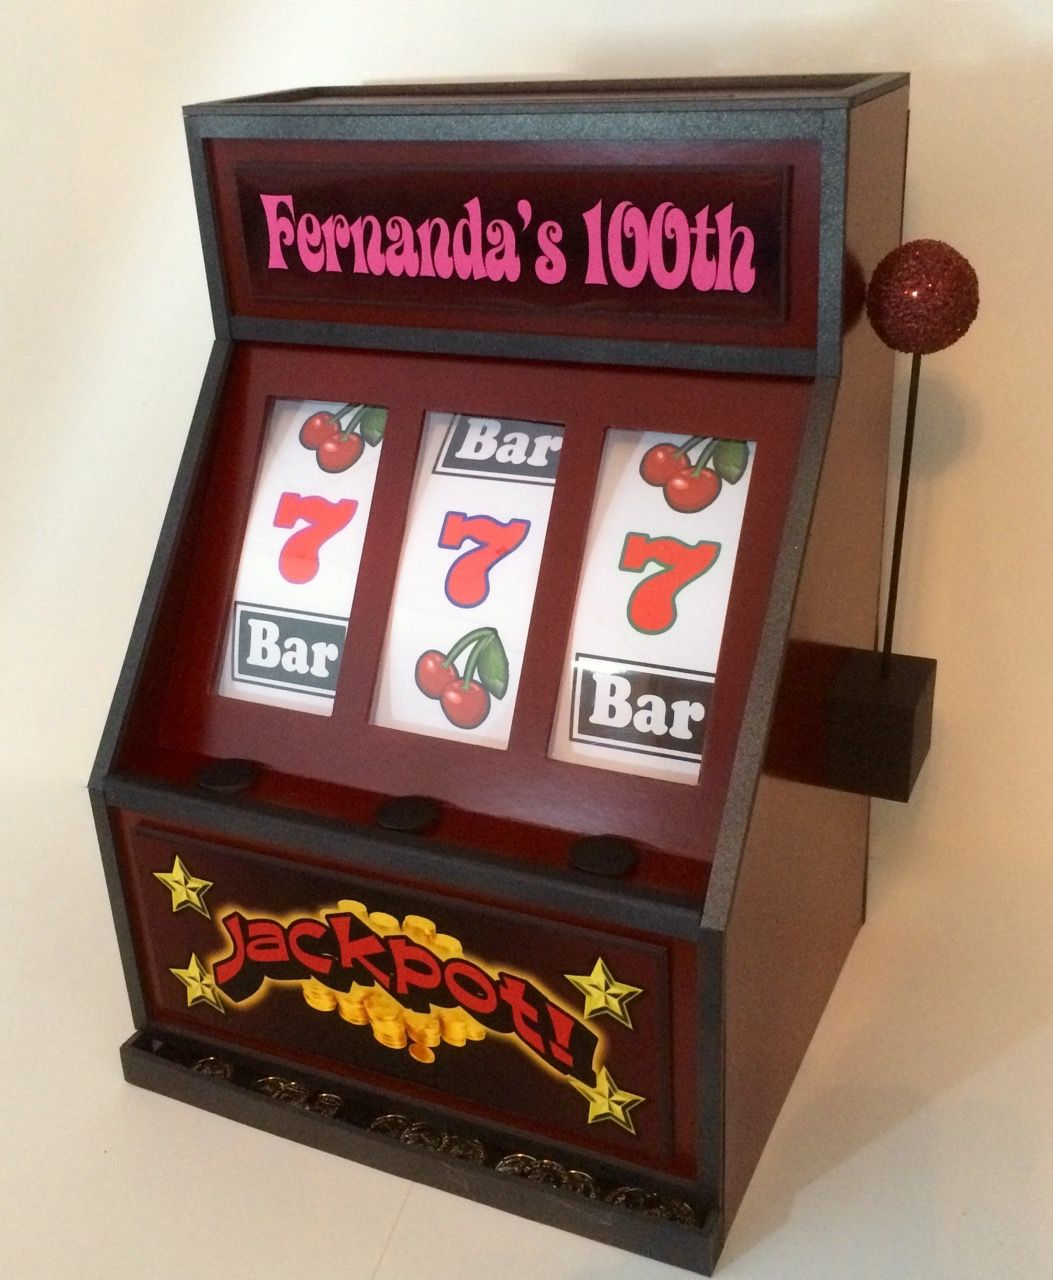 Heres a foamcore slot machine gift card box that was made for a heres a foamcore slot machine gift card box that was made for a 100th birthday party bookmarktalkfo Image collections